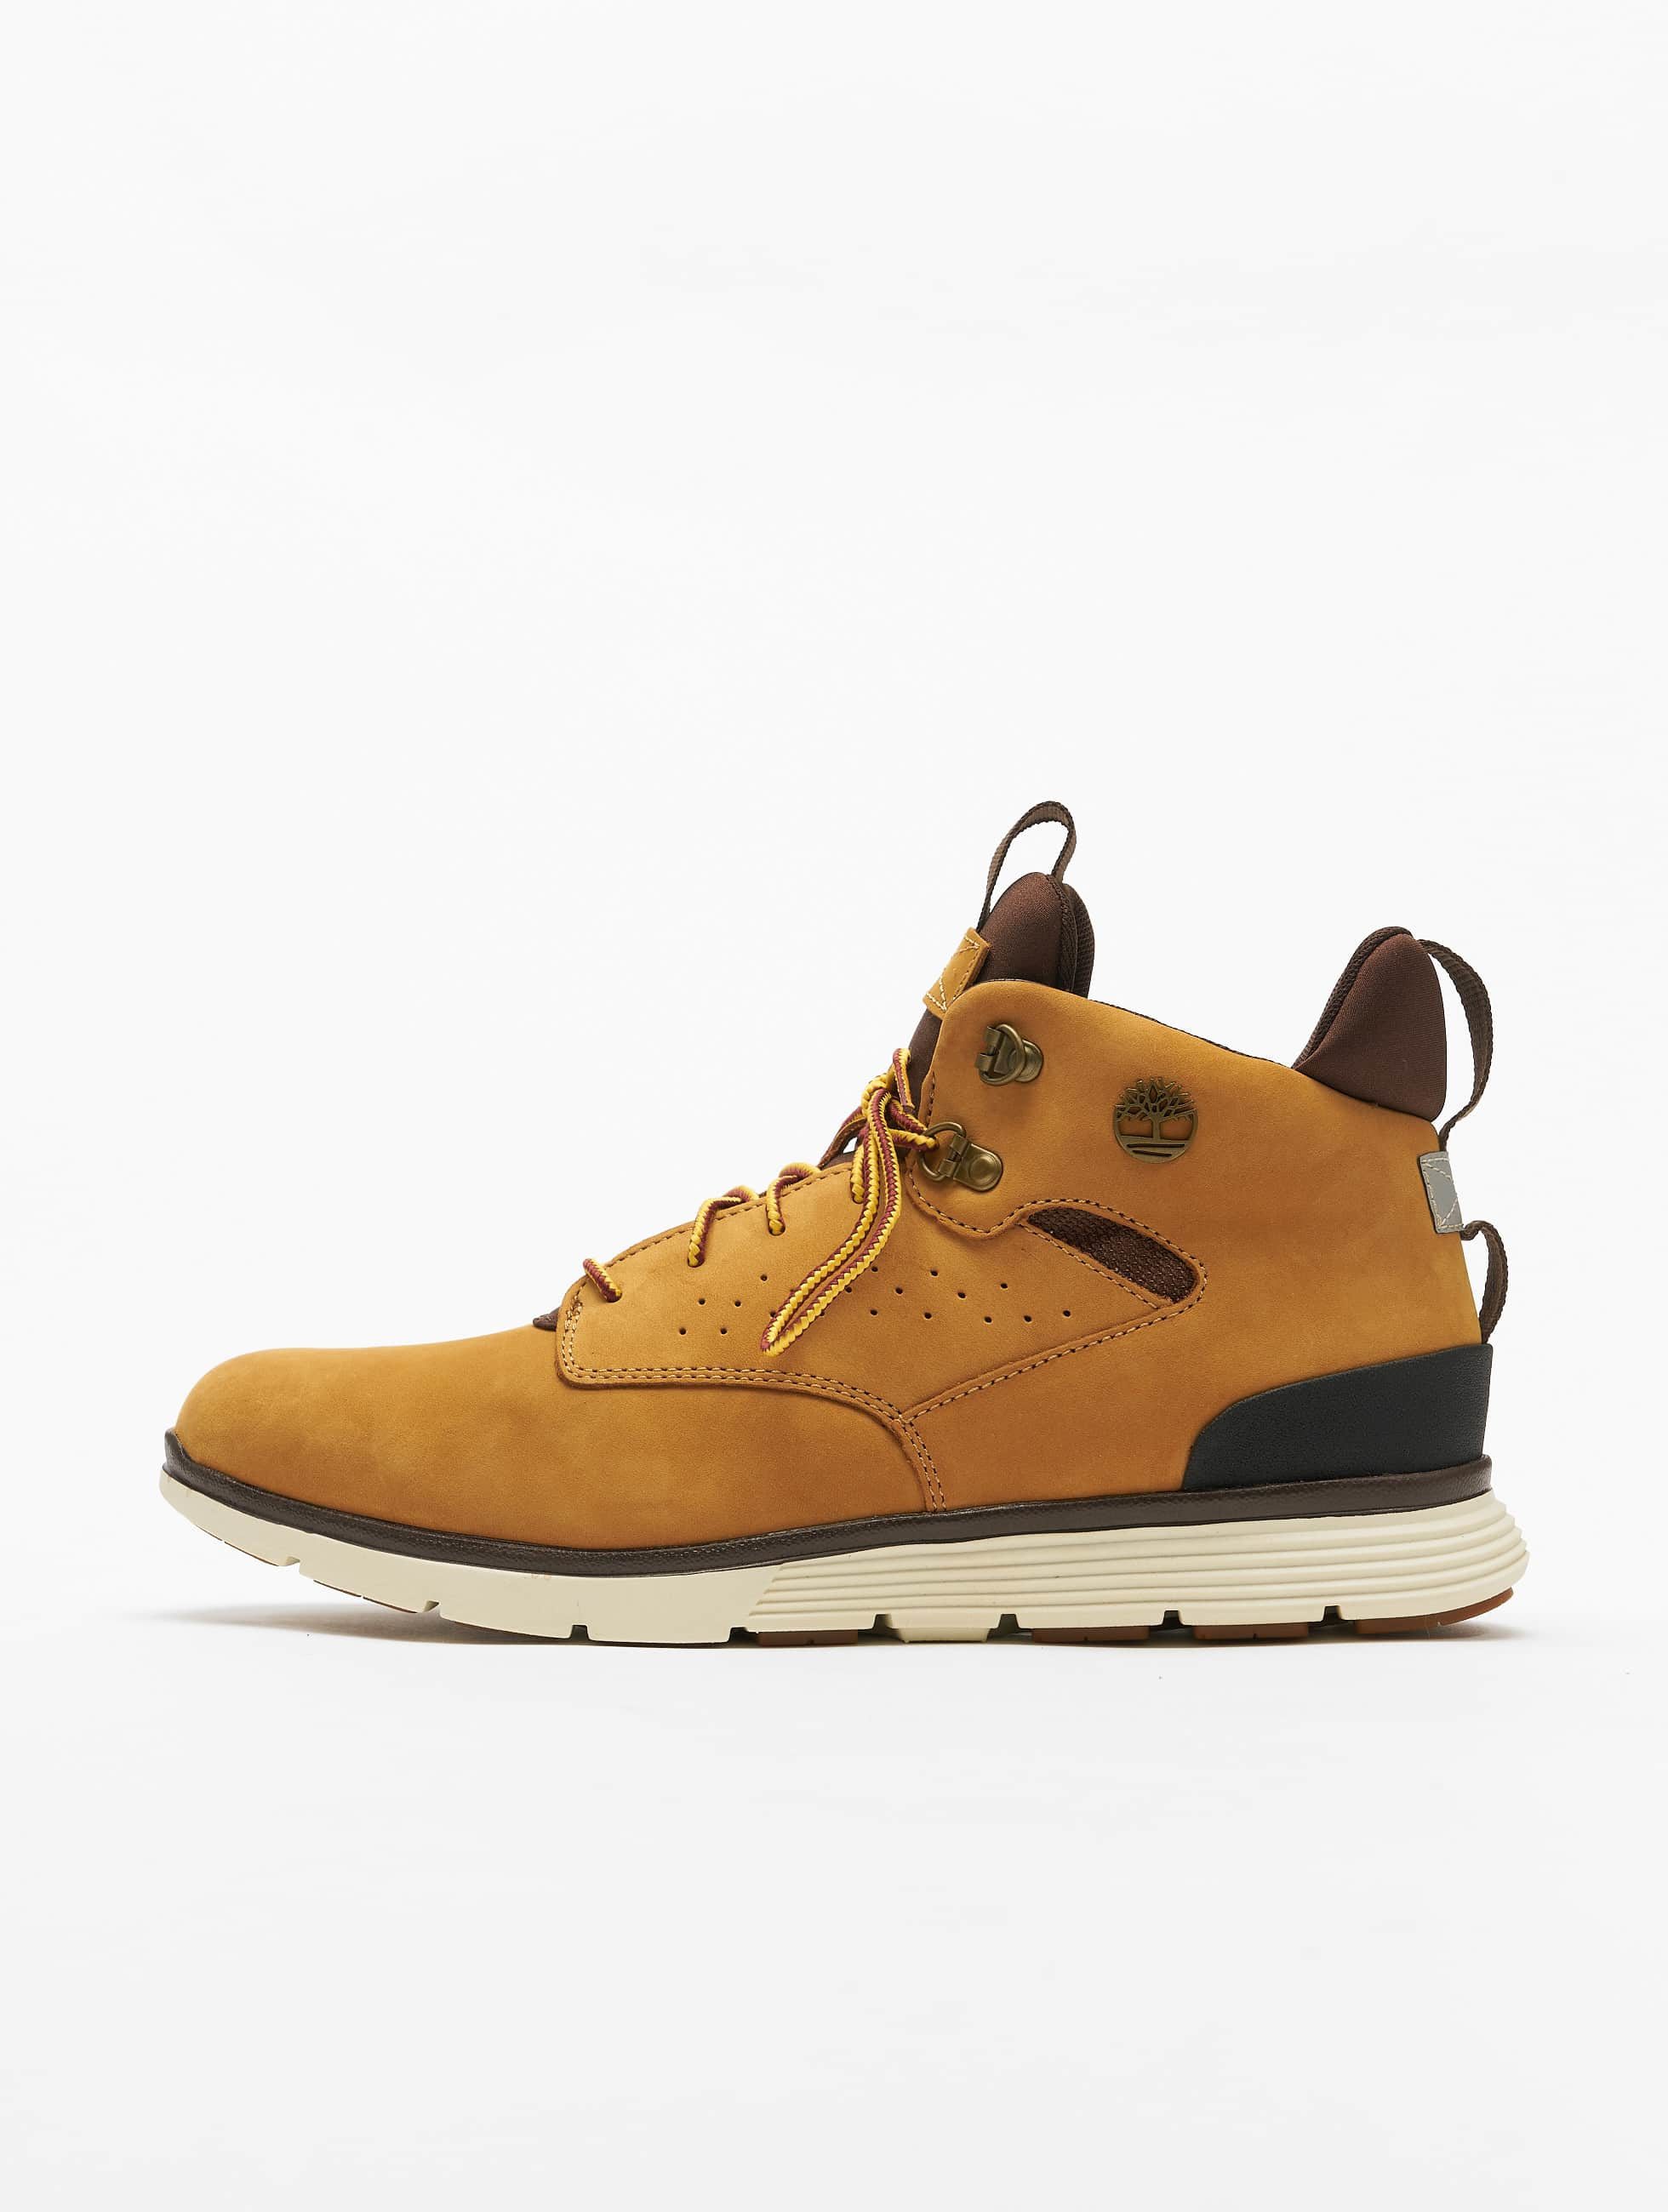 Timberland Killington Hiker Chukka Sneakers Wheat Nubuck